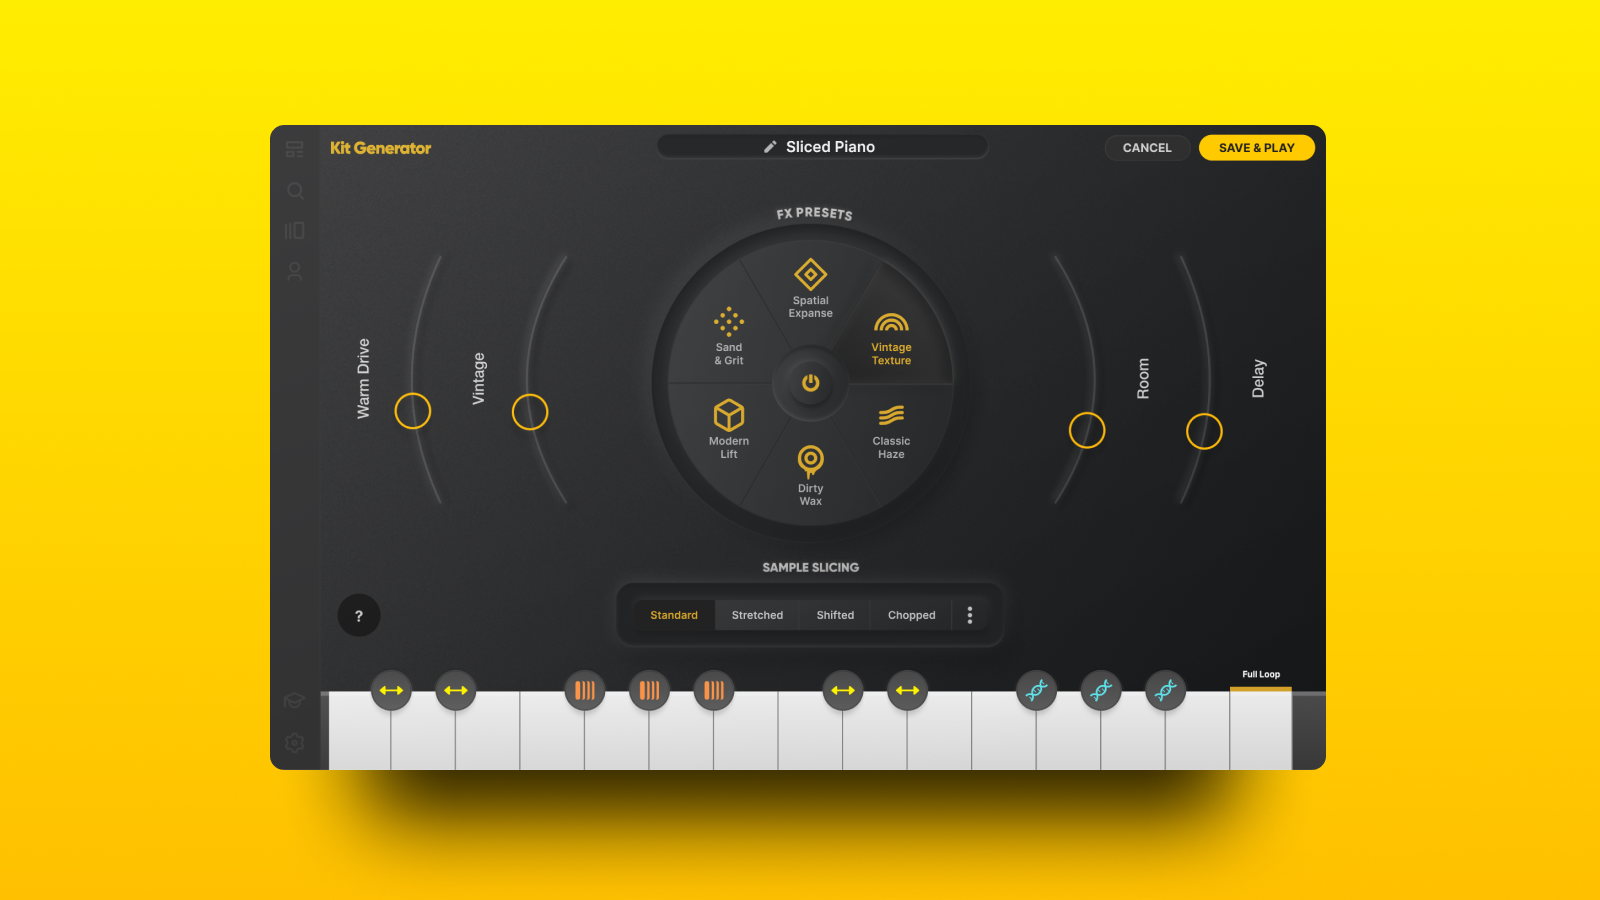 ARCADE by Output 1.6 update Kit Generator